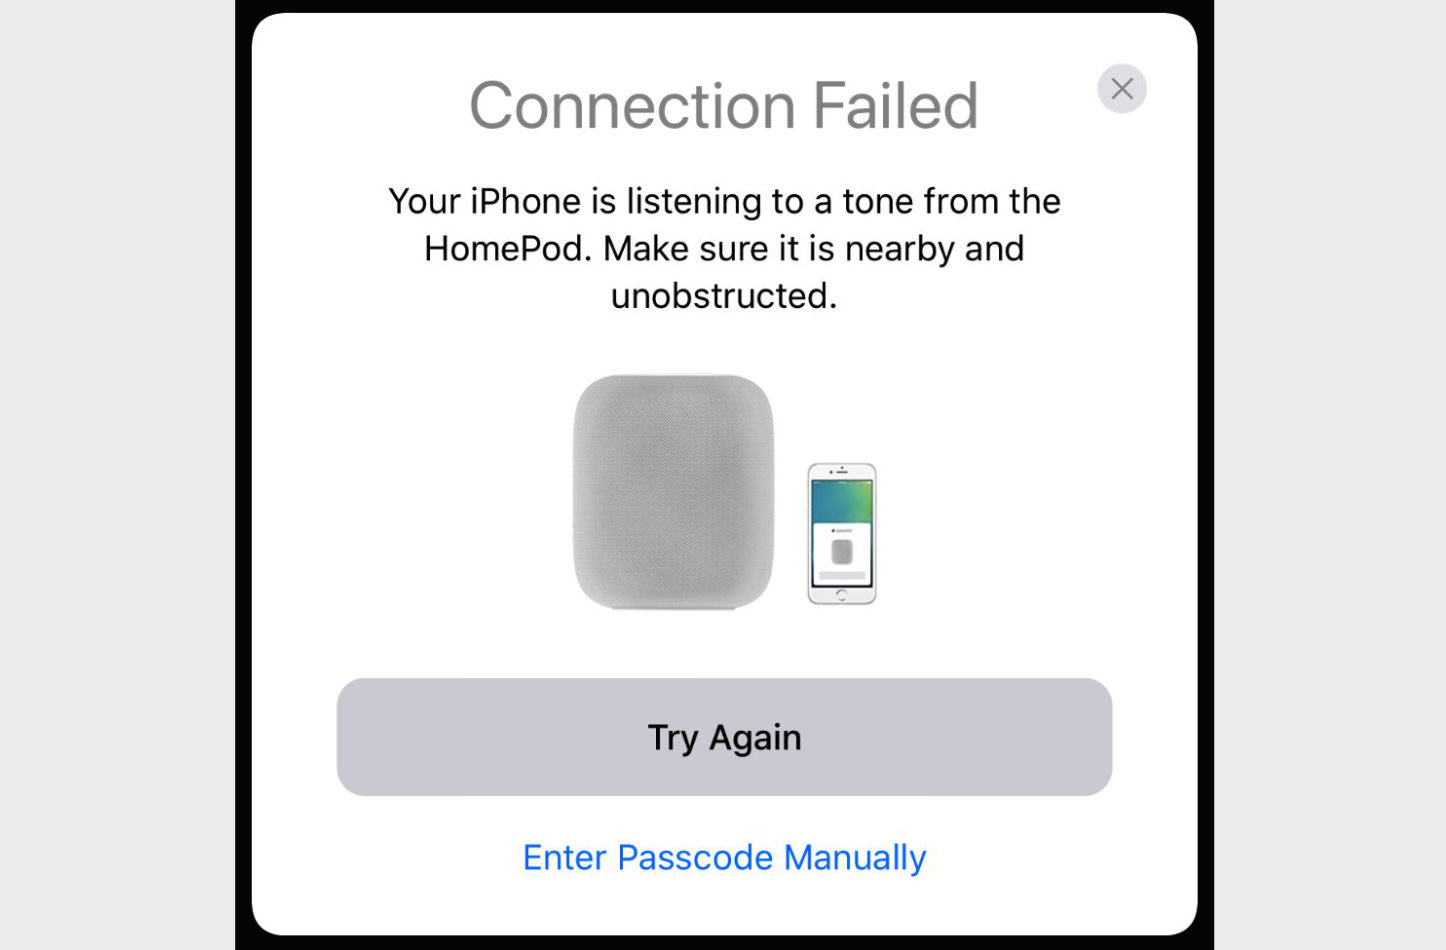 Connection Failed Homepod Setup